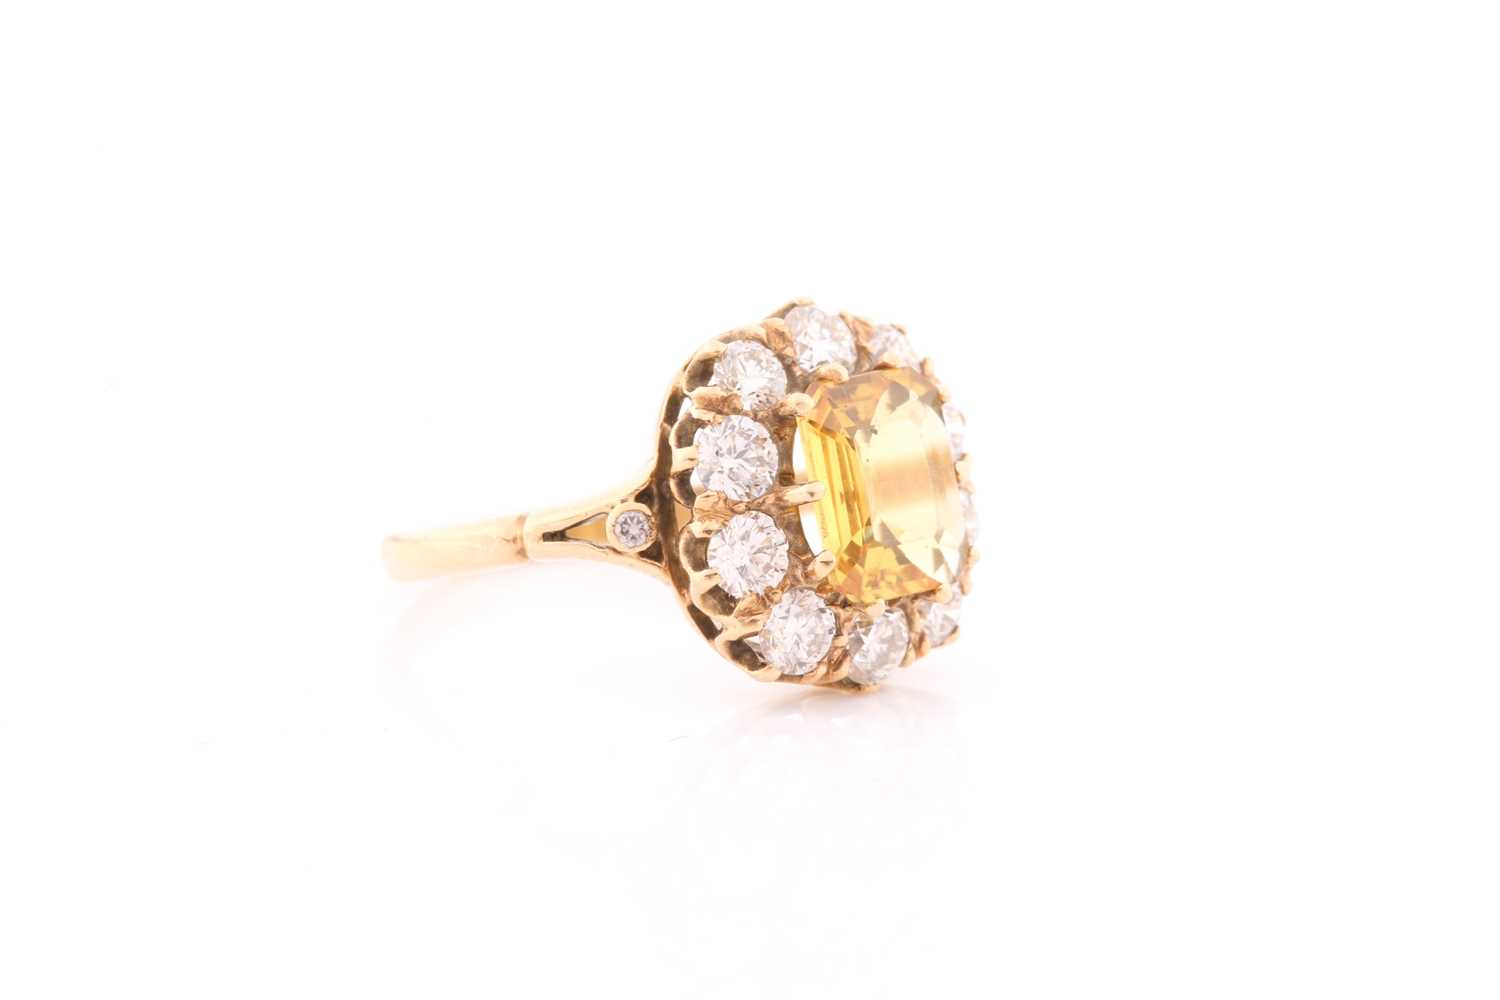 An 18ct yellow gold, diamond, and yellow sapphire dress ring, set with an emerald-cut sapphire of - Image 2 of 4